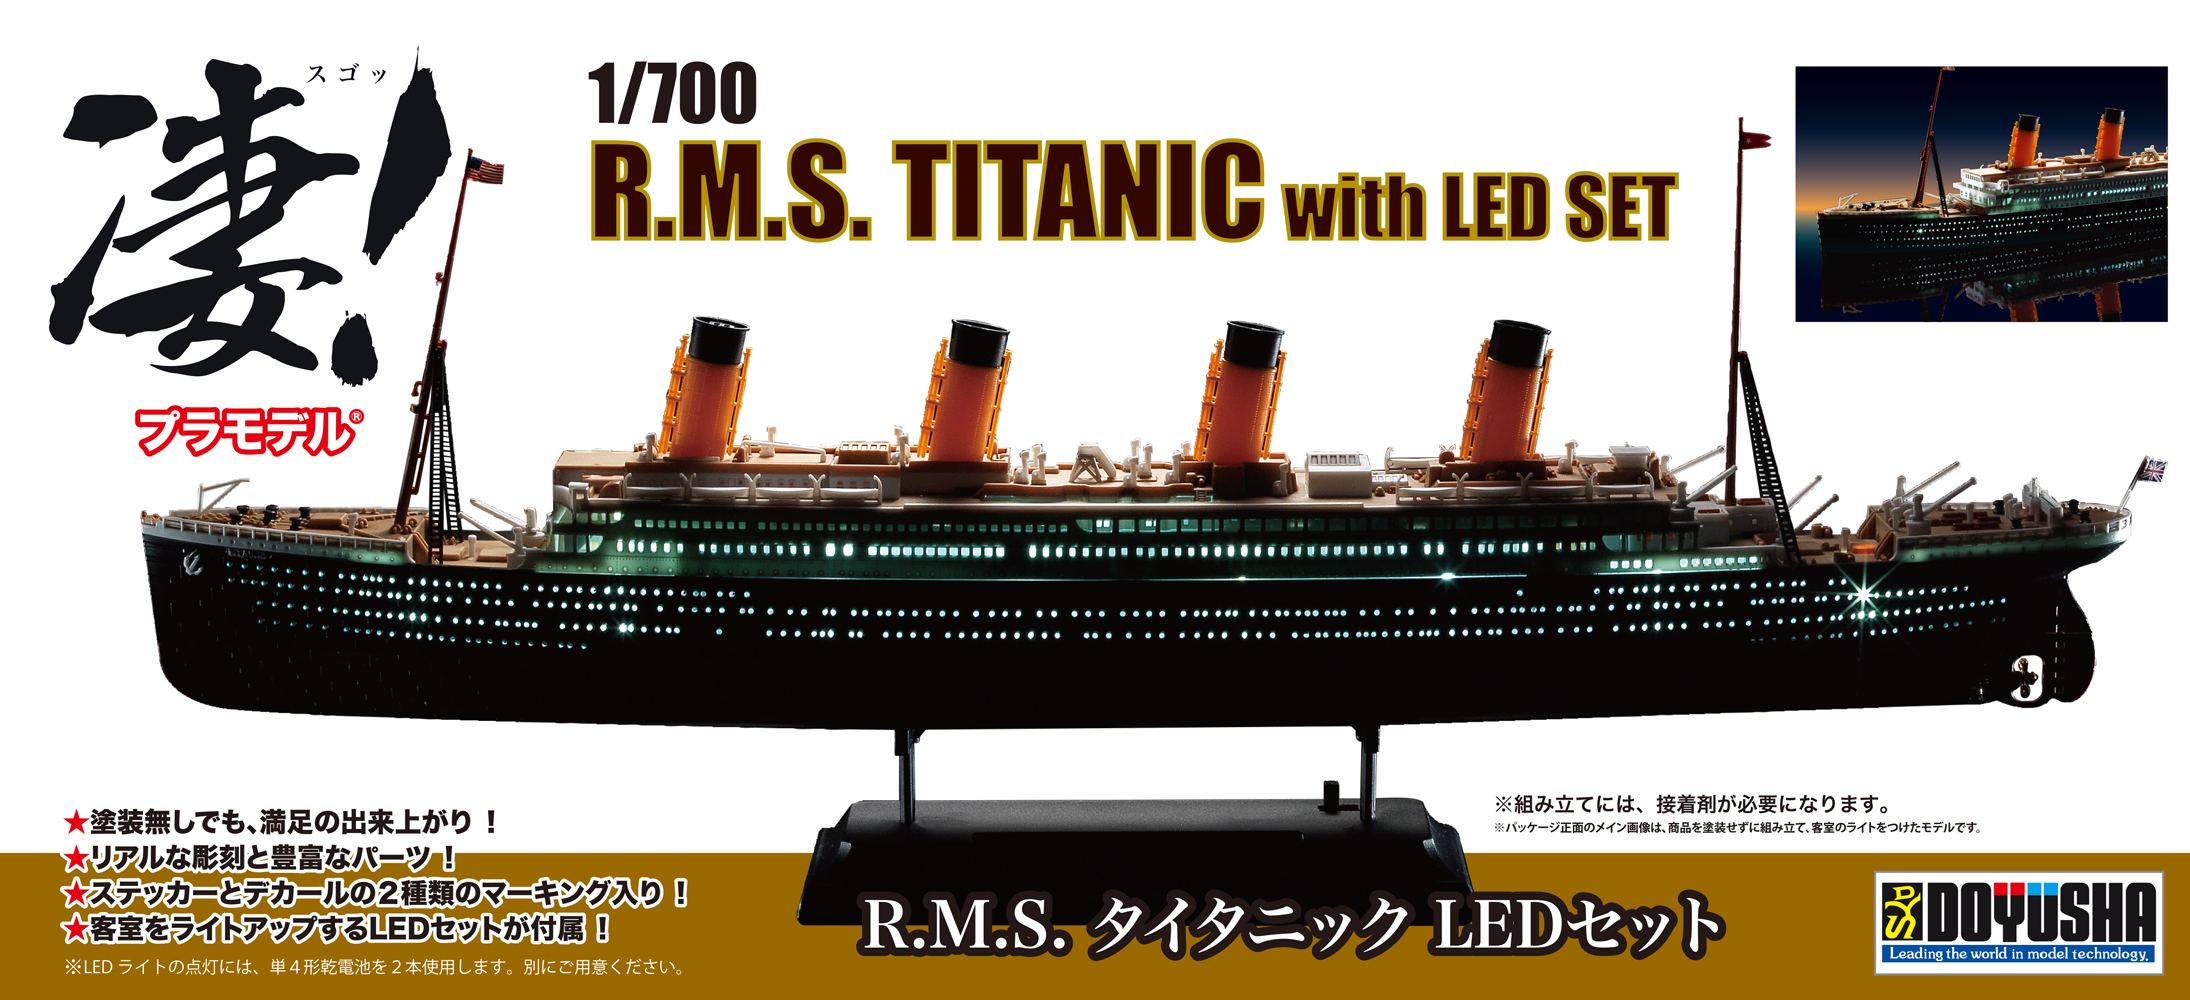 Doyusha 1/700 R.M.S. TITANIC with LED SET